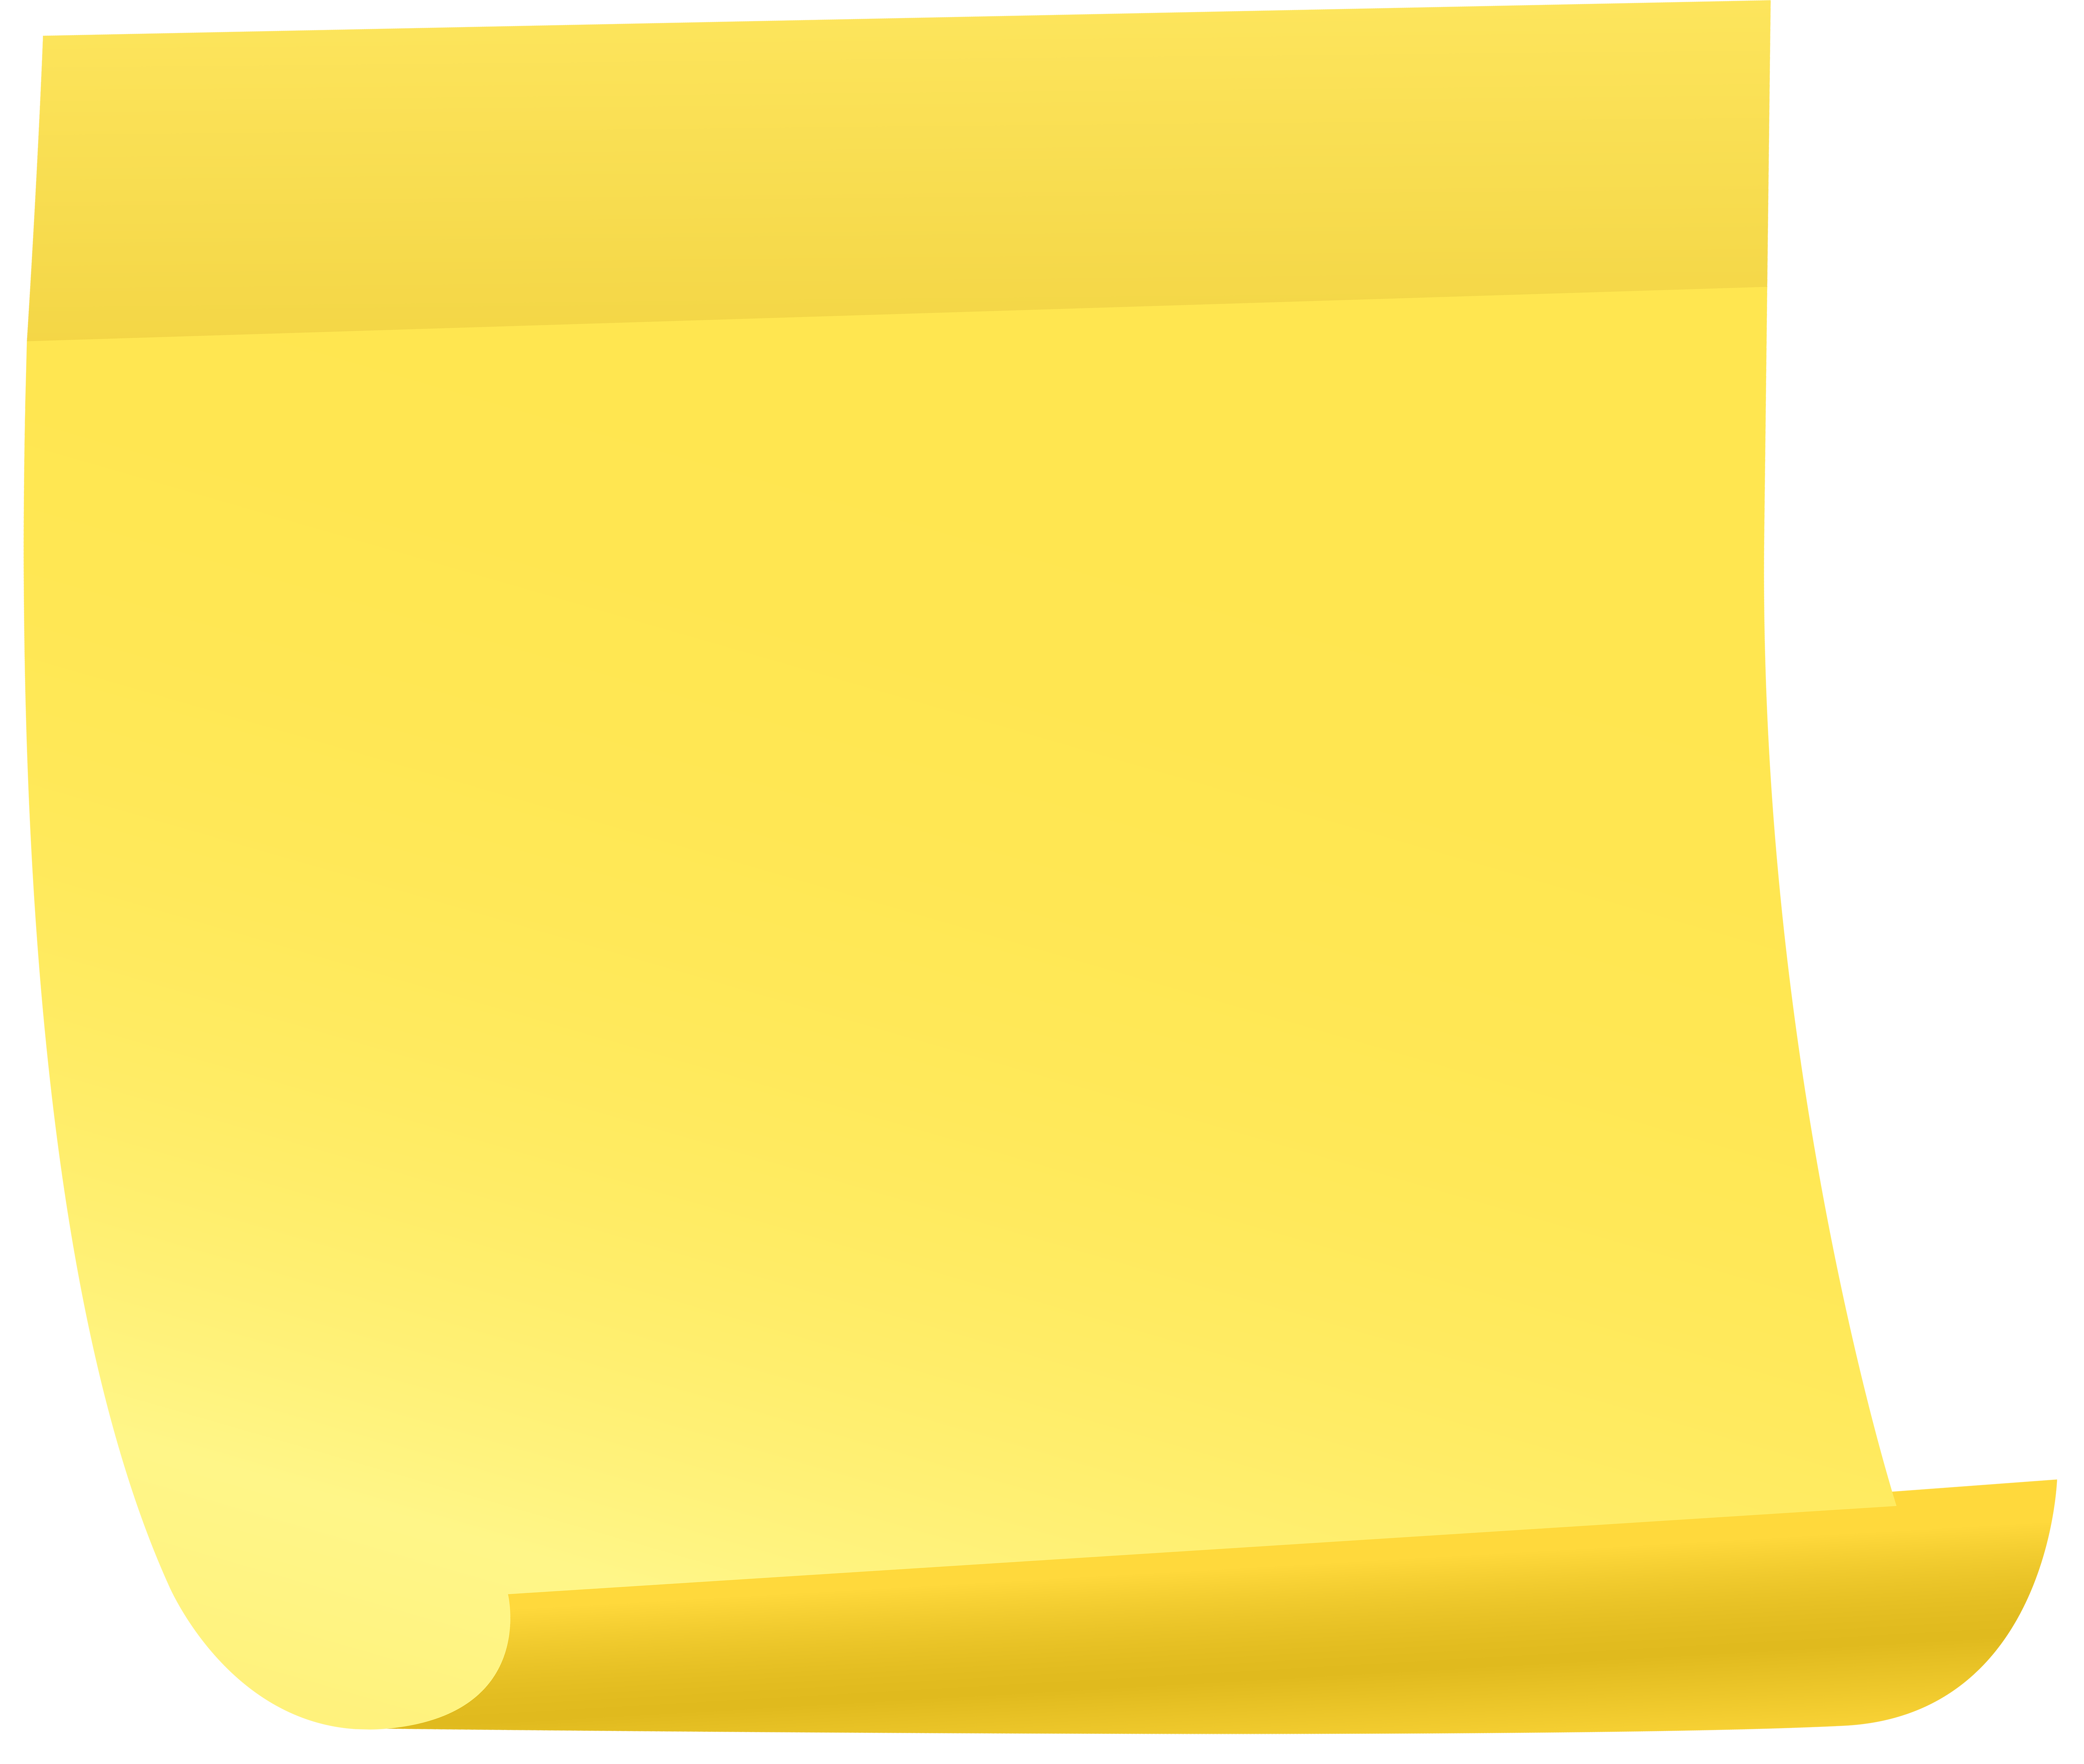 Sticky note transparent png. Clip art best web